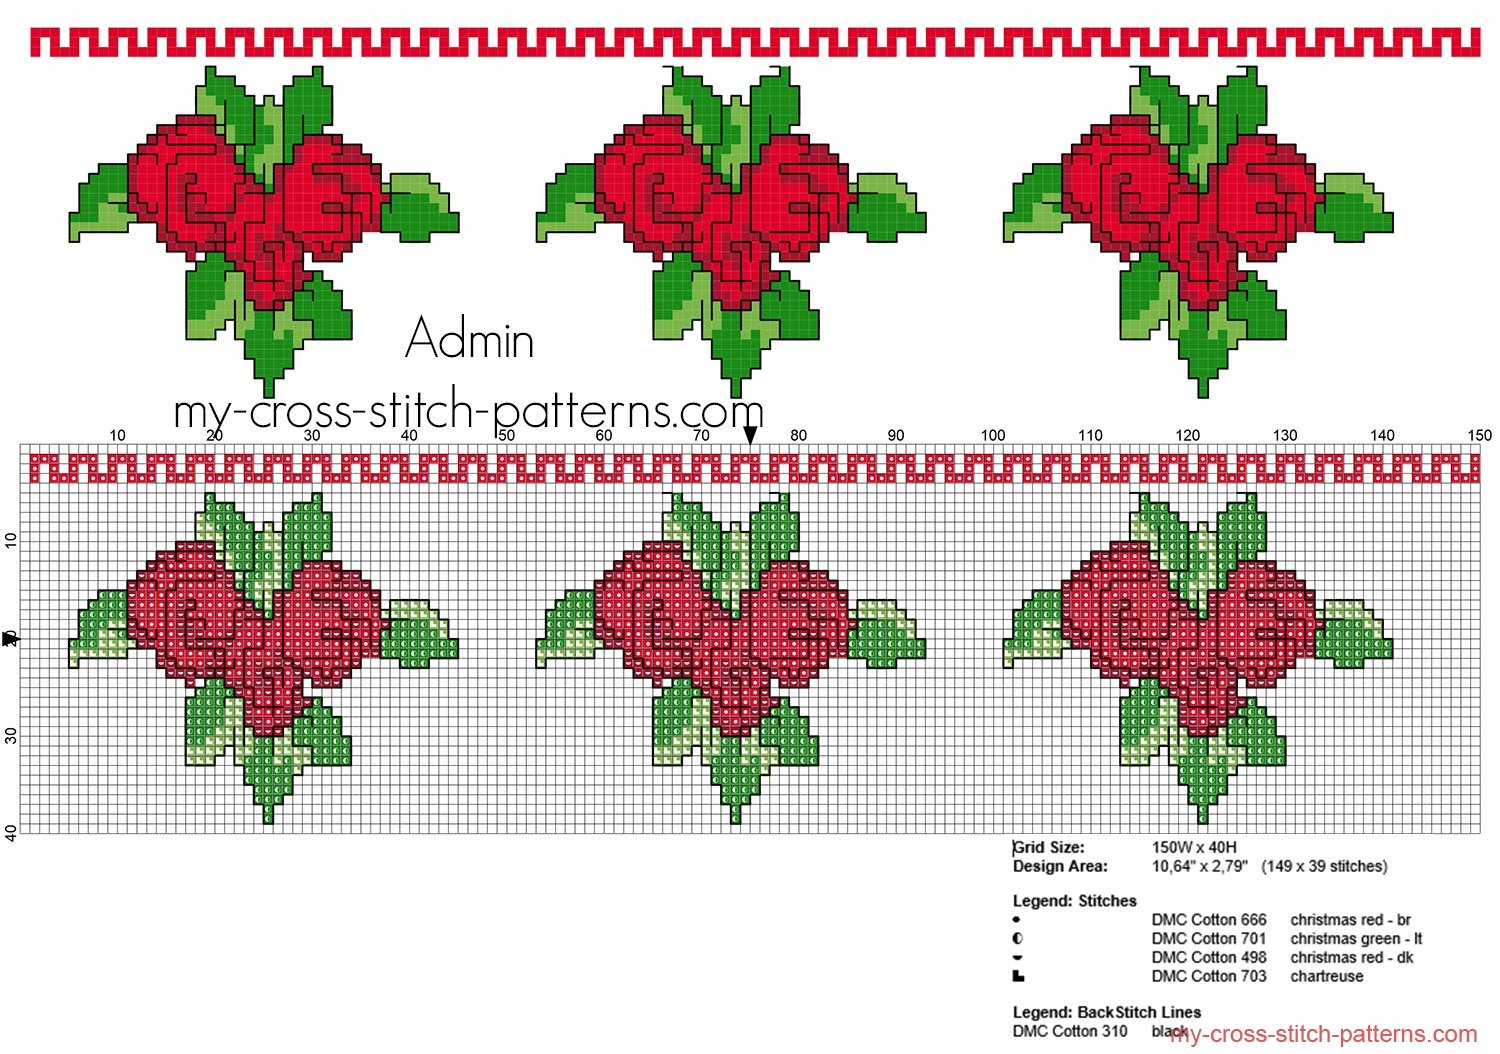 cross_stitch_pattern_border_with_red_roses_height_39_stitches_free_download